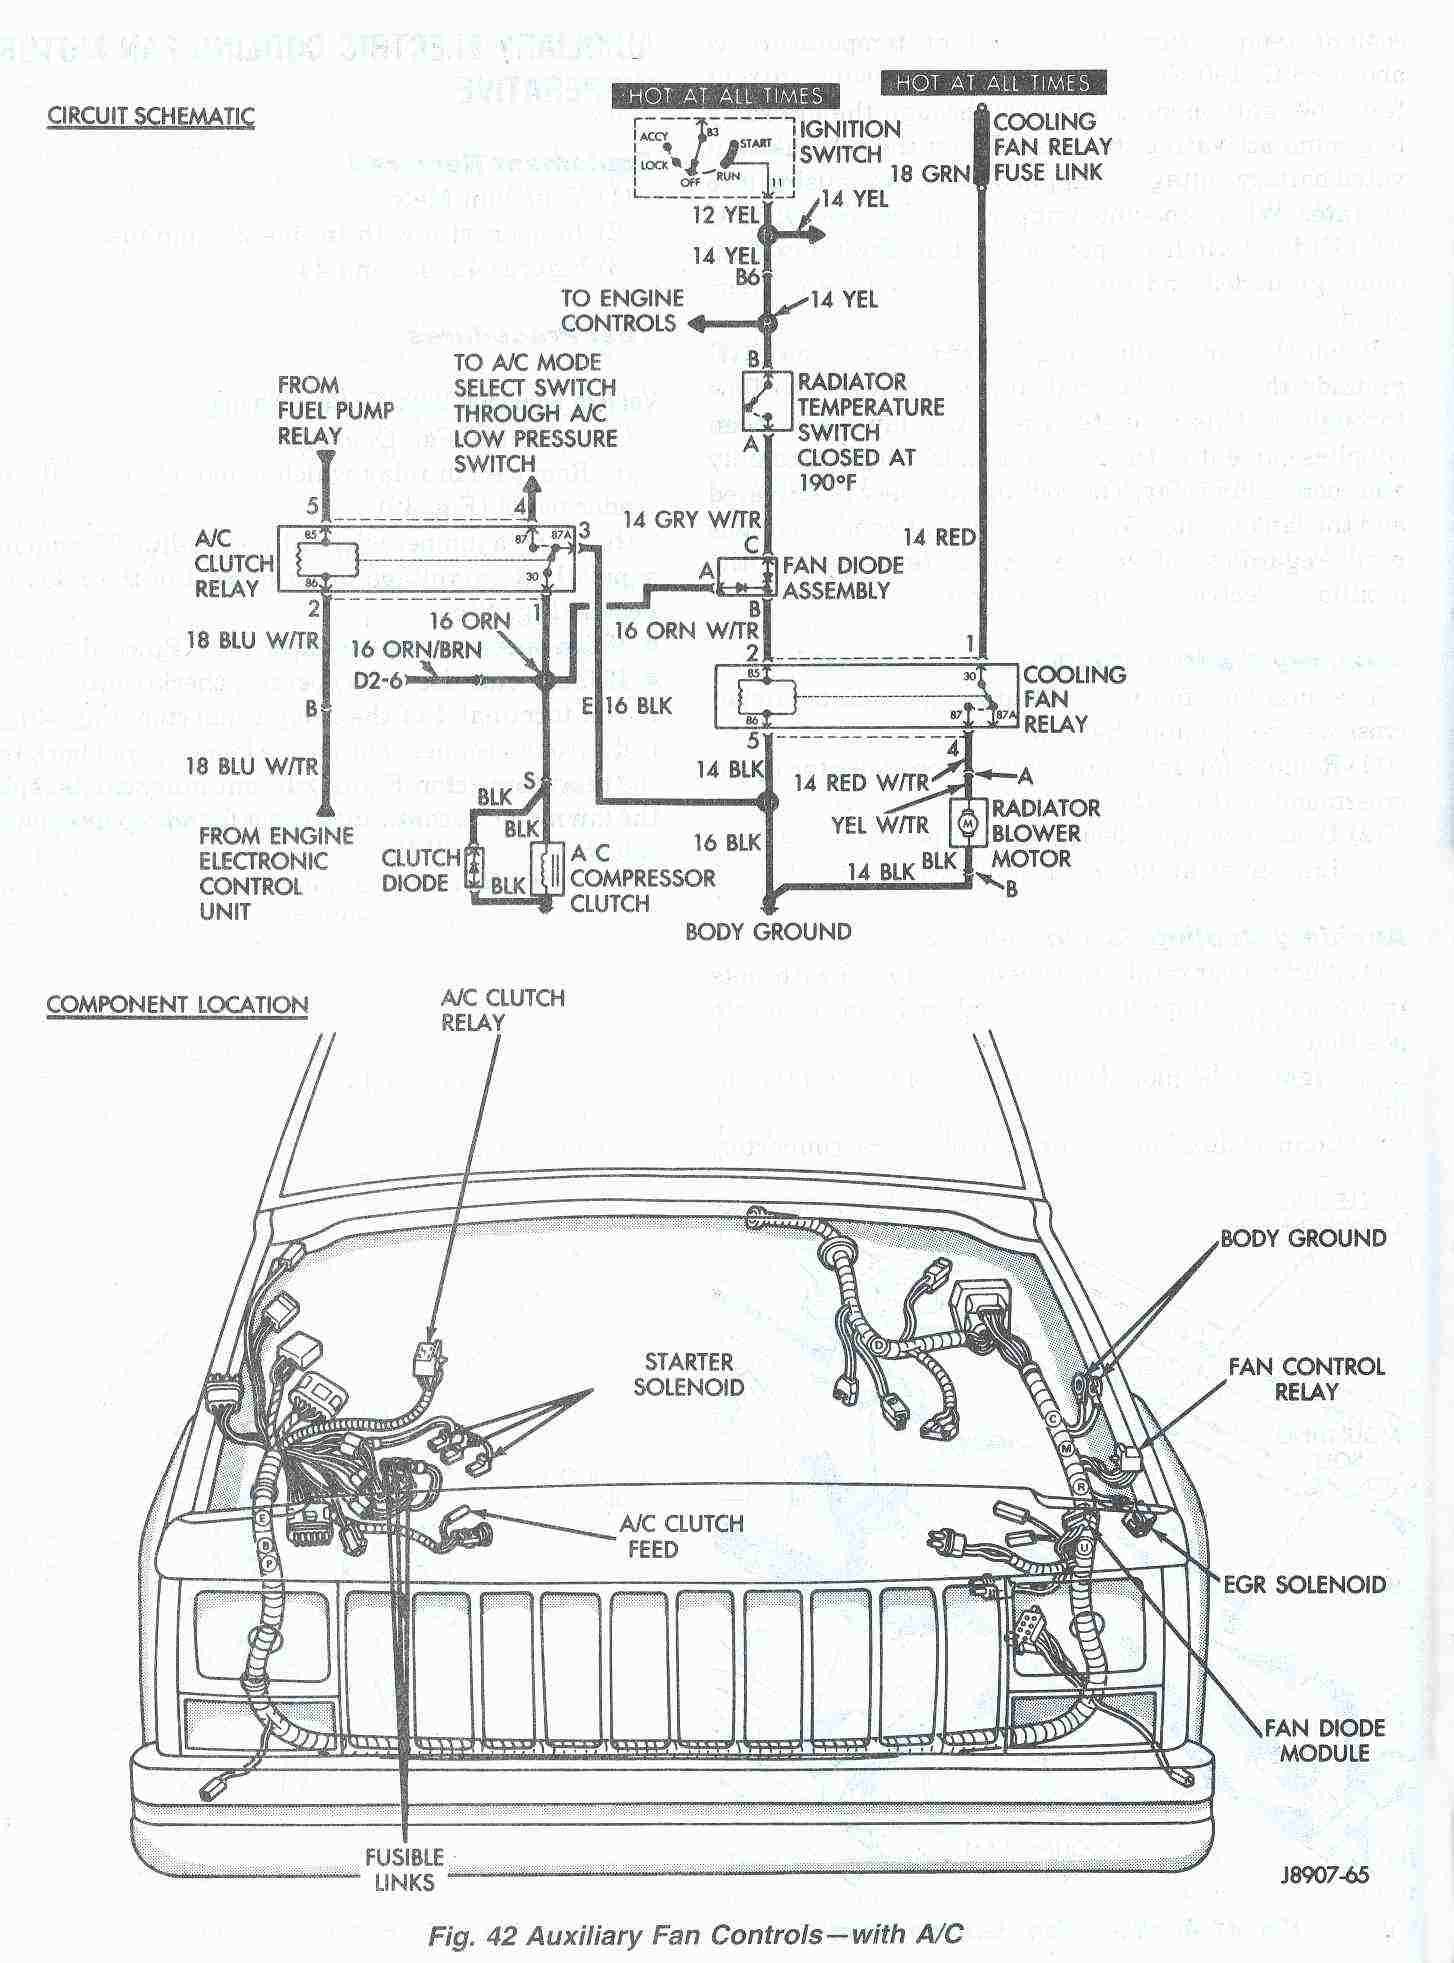 auxiliary fan schematic fig 42 jpg 1454×1963 cherokee diagrams 1996 jeep grand cherokee laredo wiring diagram wiring diagram and hernes